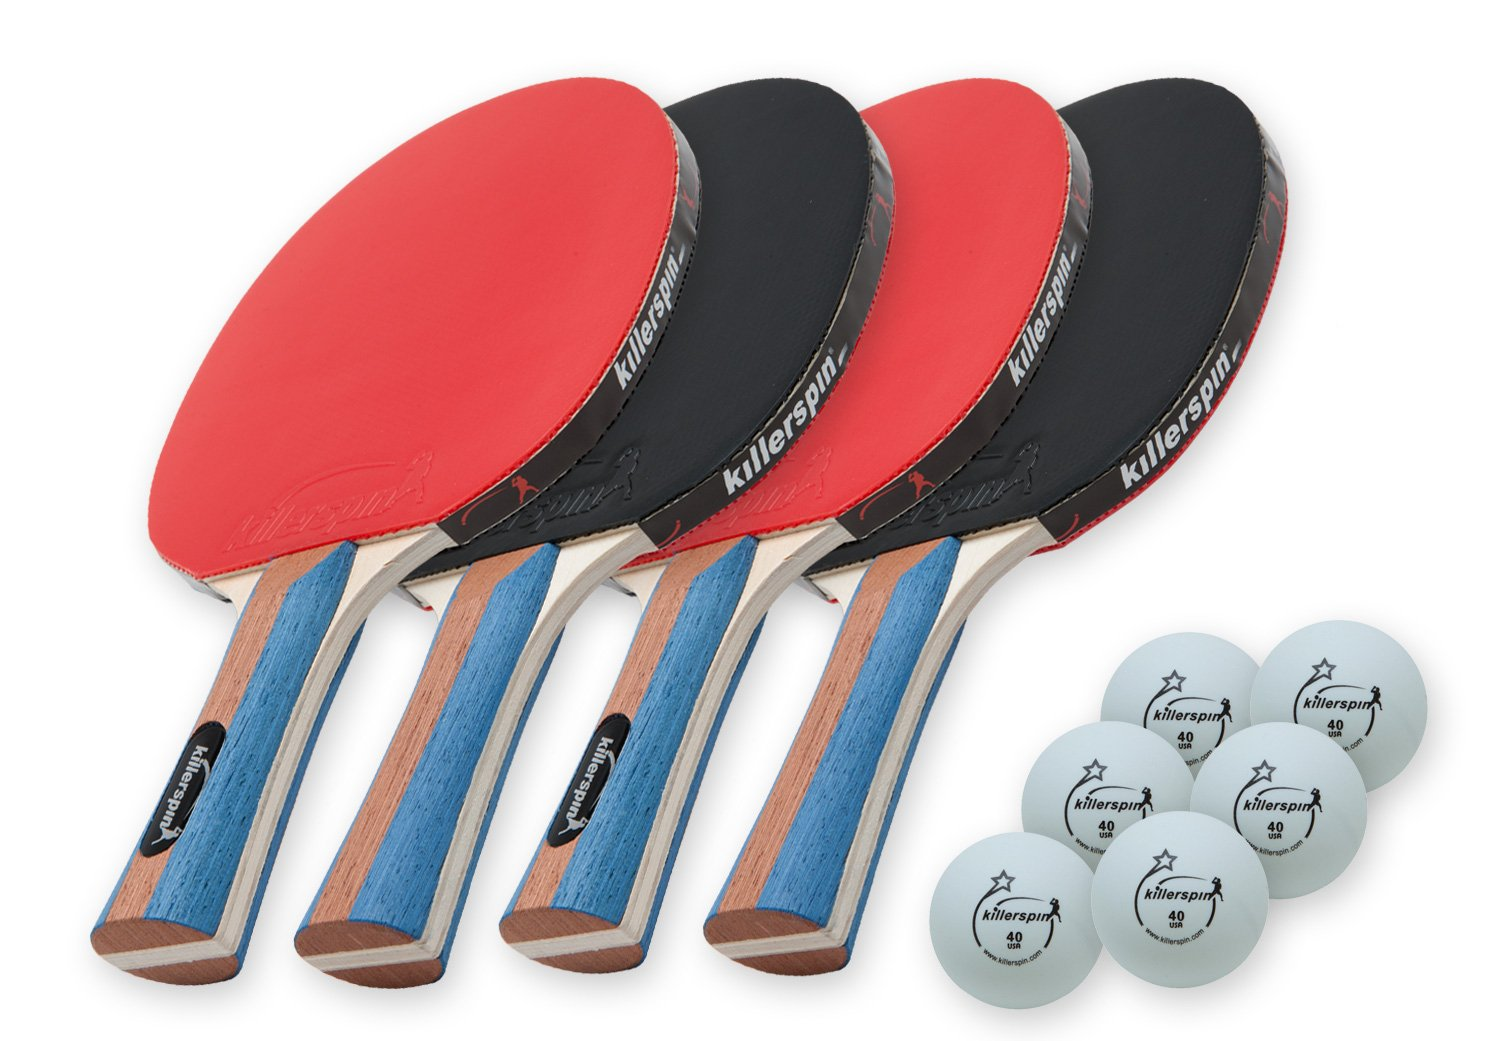 Amazon.com  Killerspin JETSET4 - Table Tennis Set with 4 Ping Pong Paddles and 6 Ping Pong Balls  Killerspin Paddle  Sports \u0026 Outdoors  sc 1 st  Amazon.com & Amazon.com : Killerspin JETSET4 - Table Tennis Set with 4 Ping Pong ...